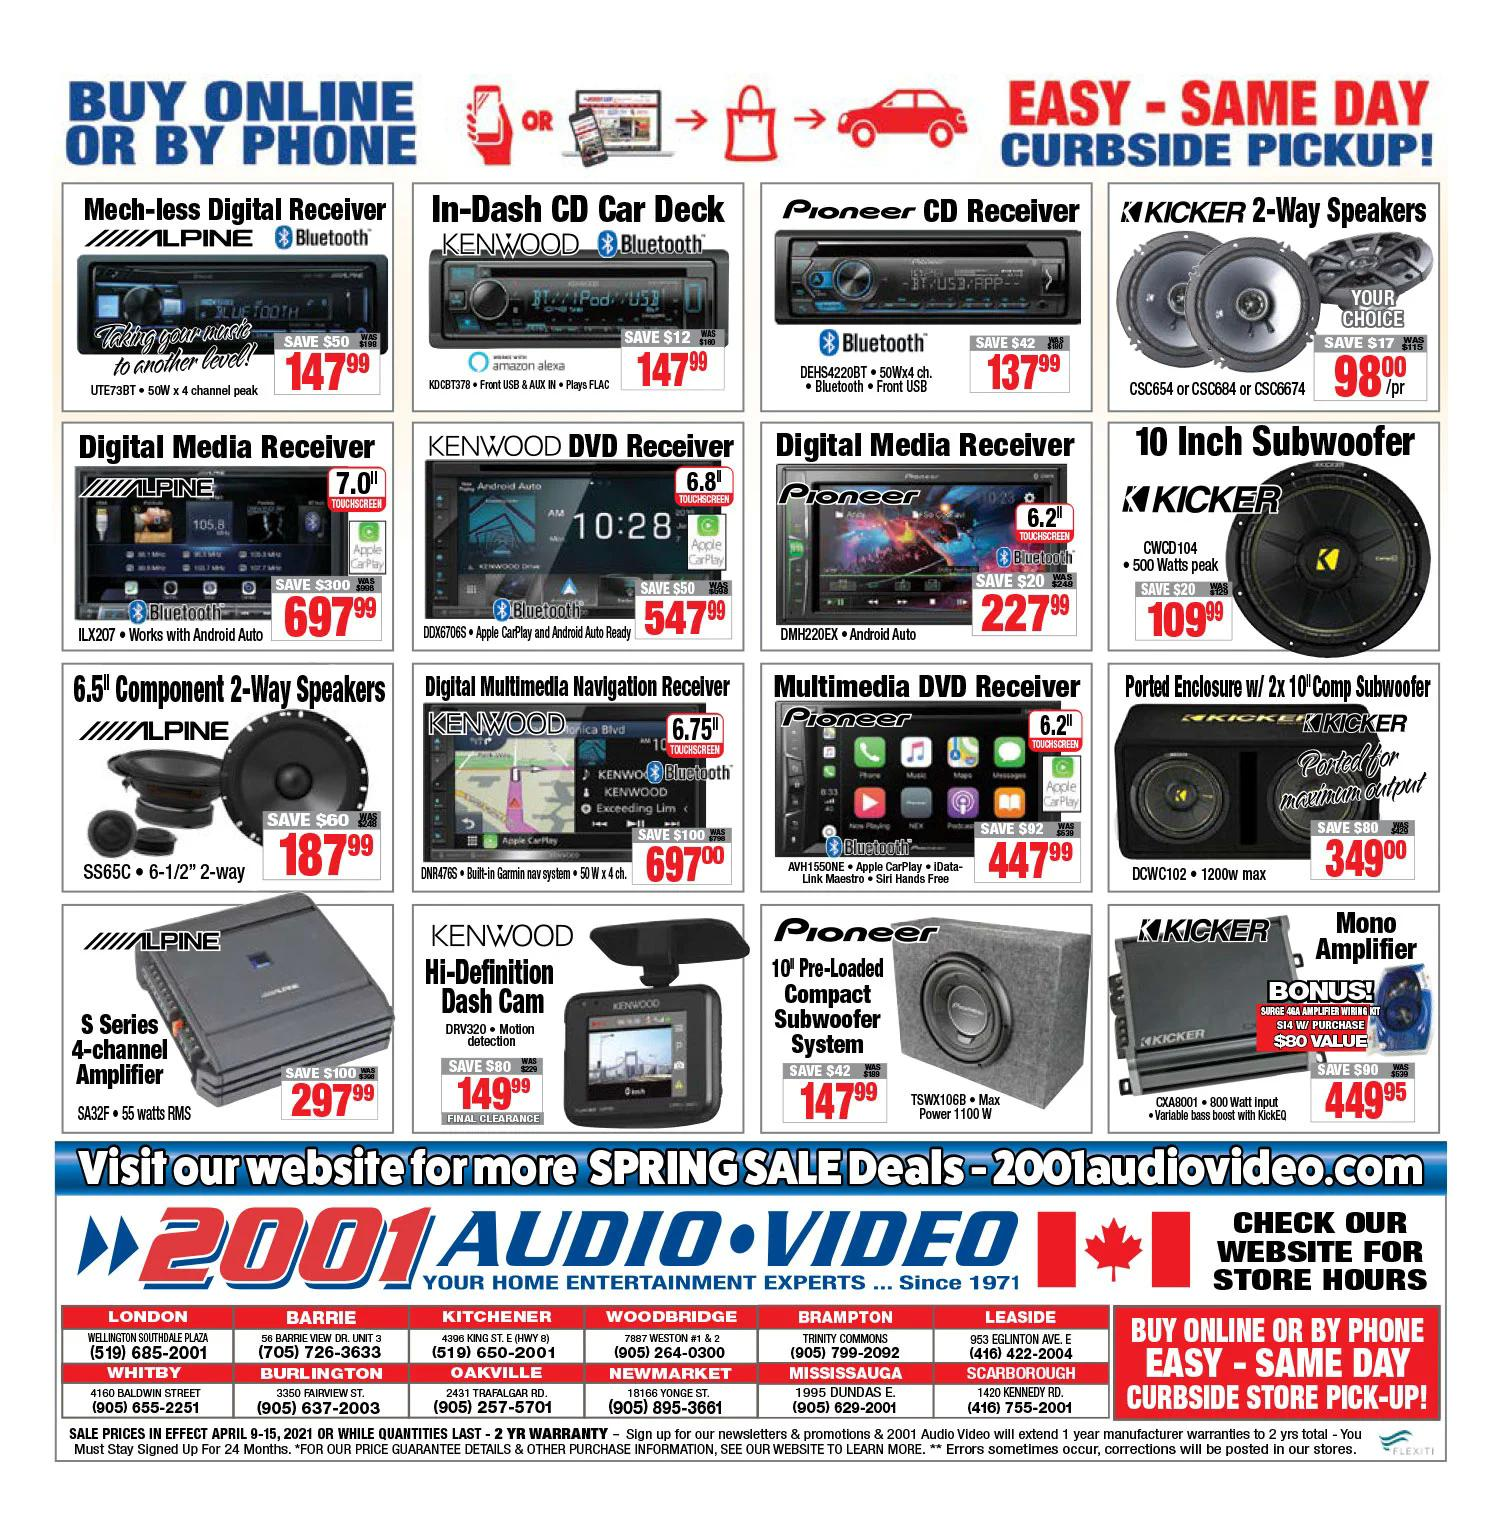 2001 Audio Video - Weekly Flyer Specials - Page 14